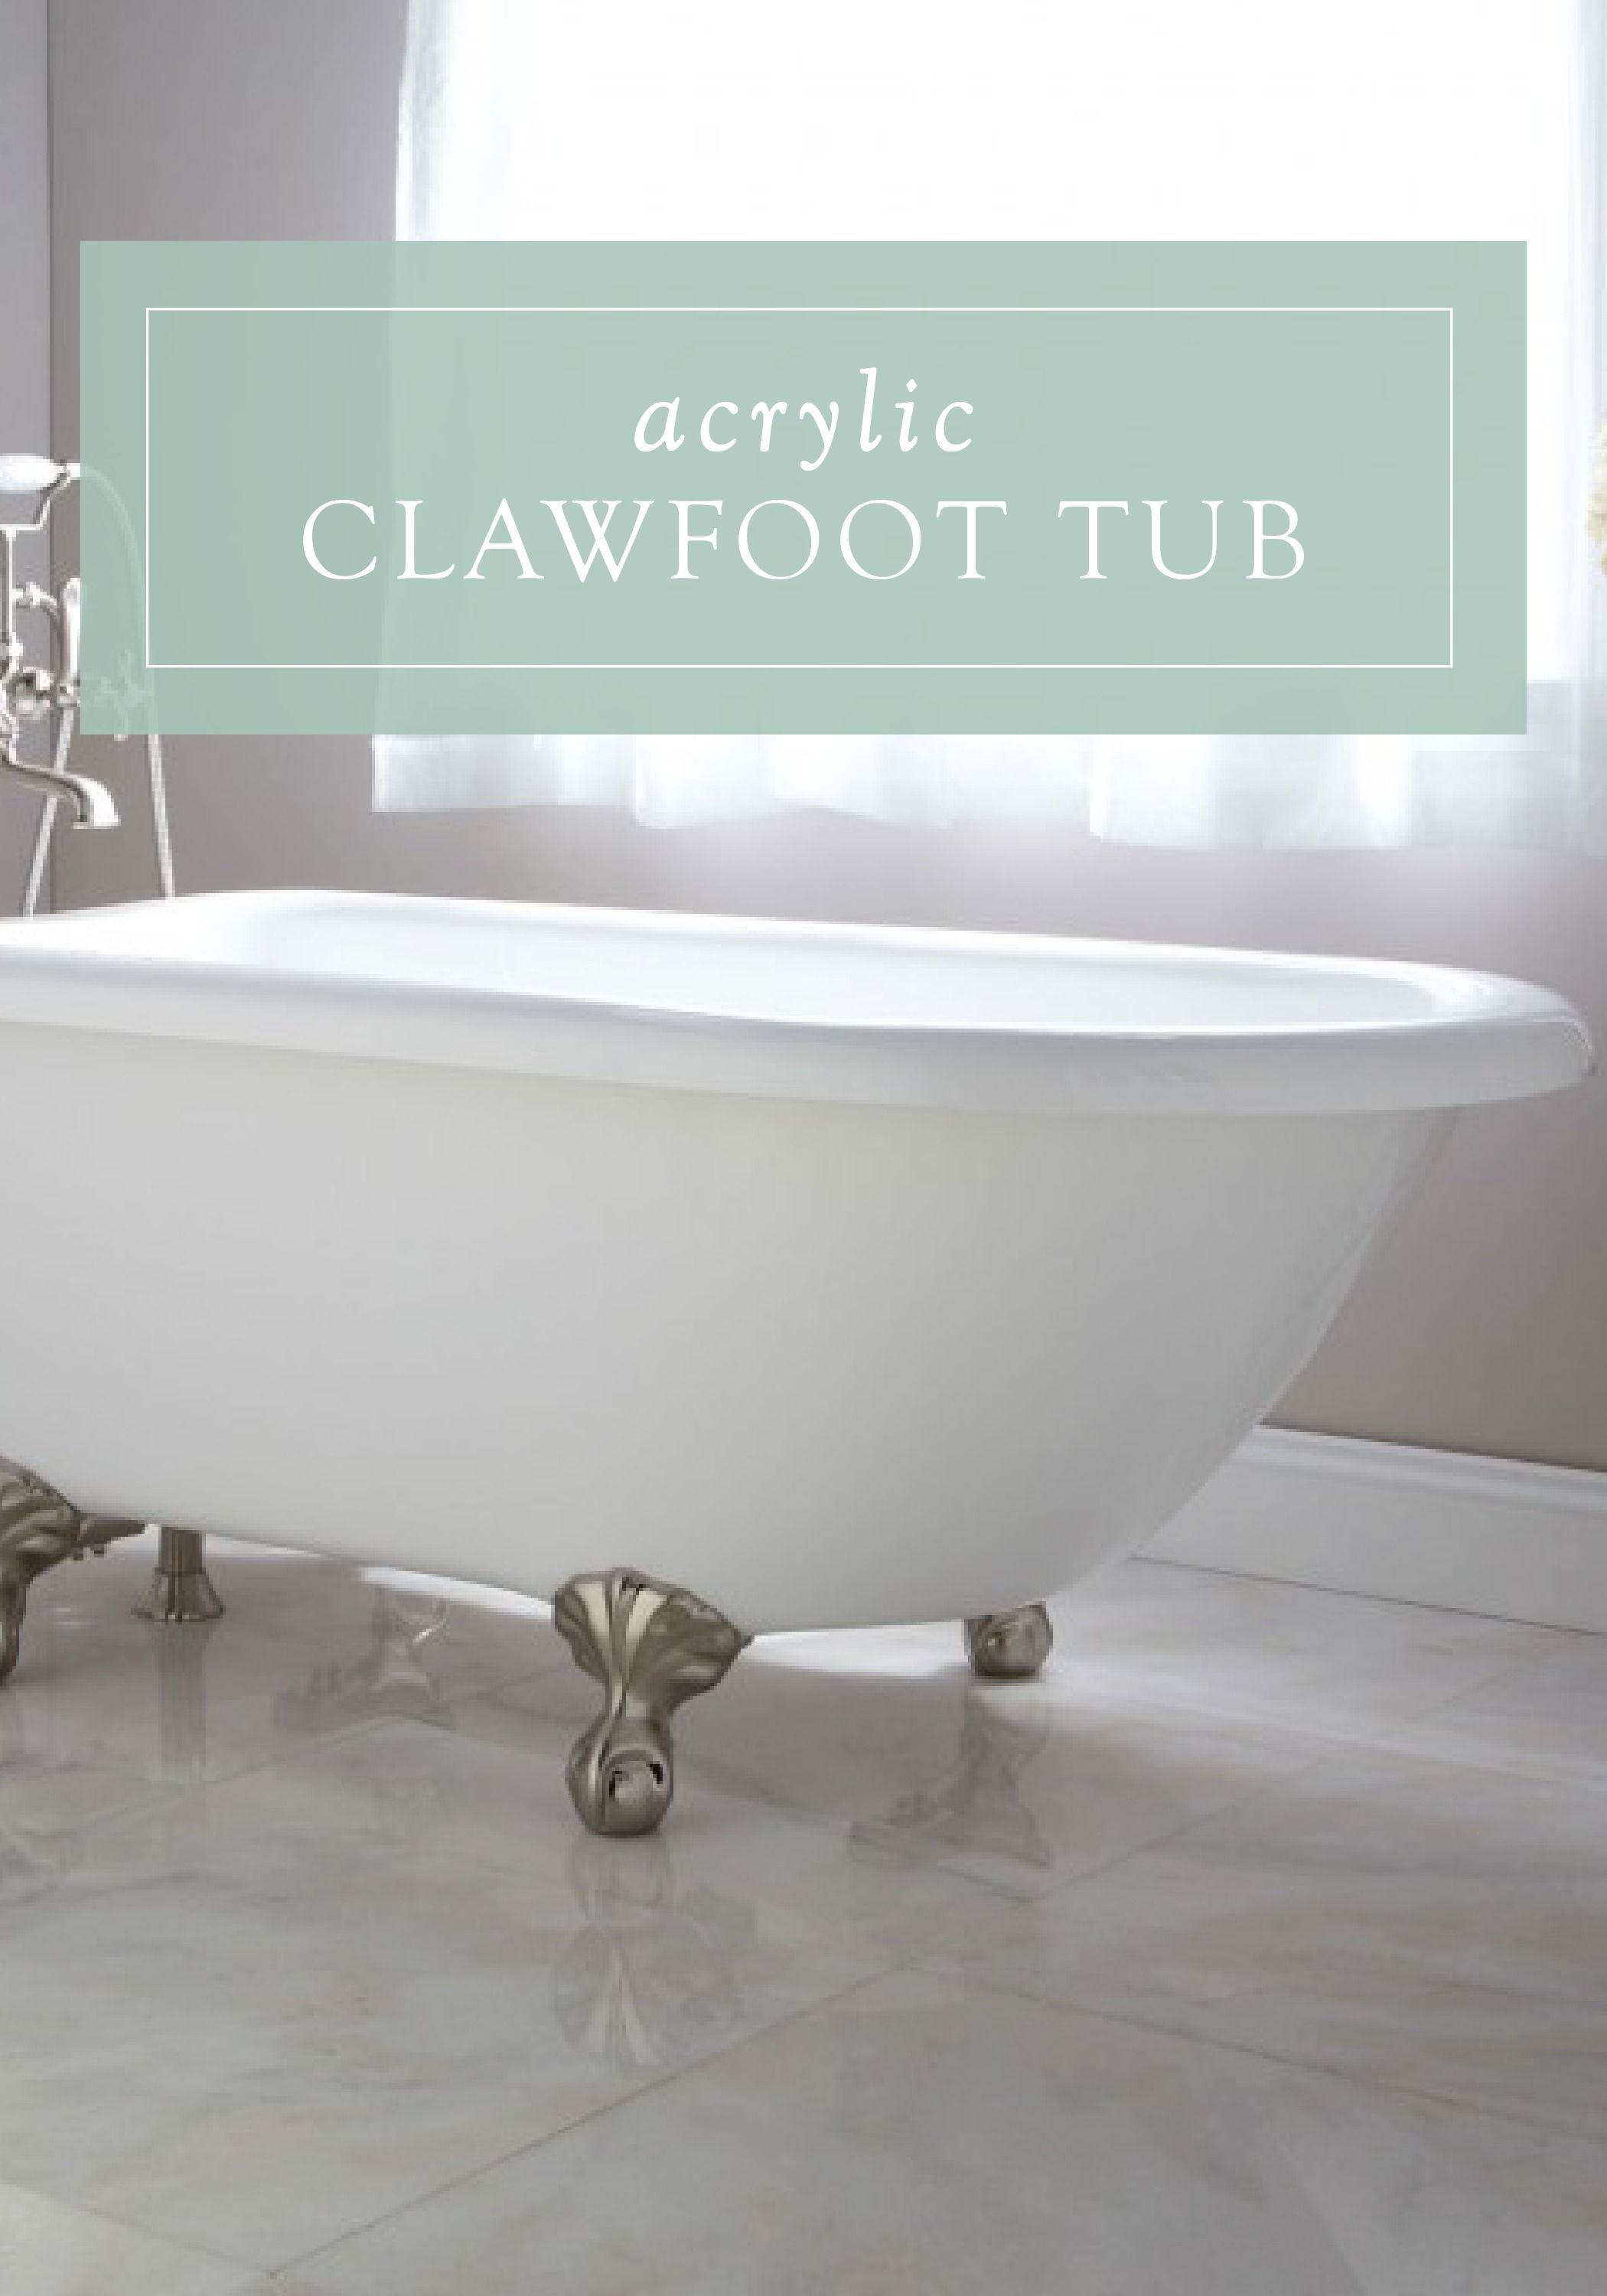 Rayne Acrylic Clawfoot Tub | Tubs, Master bedroom and Traditional